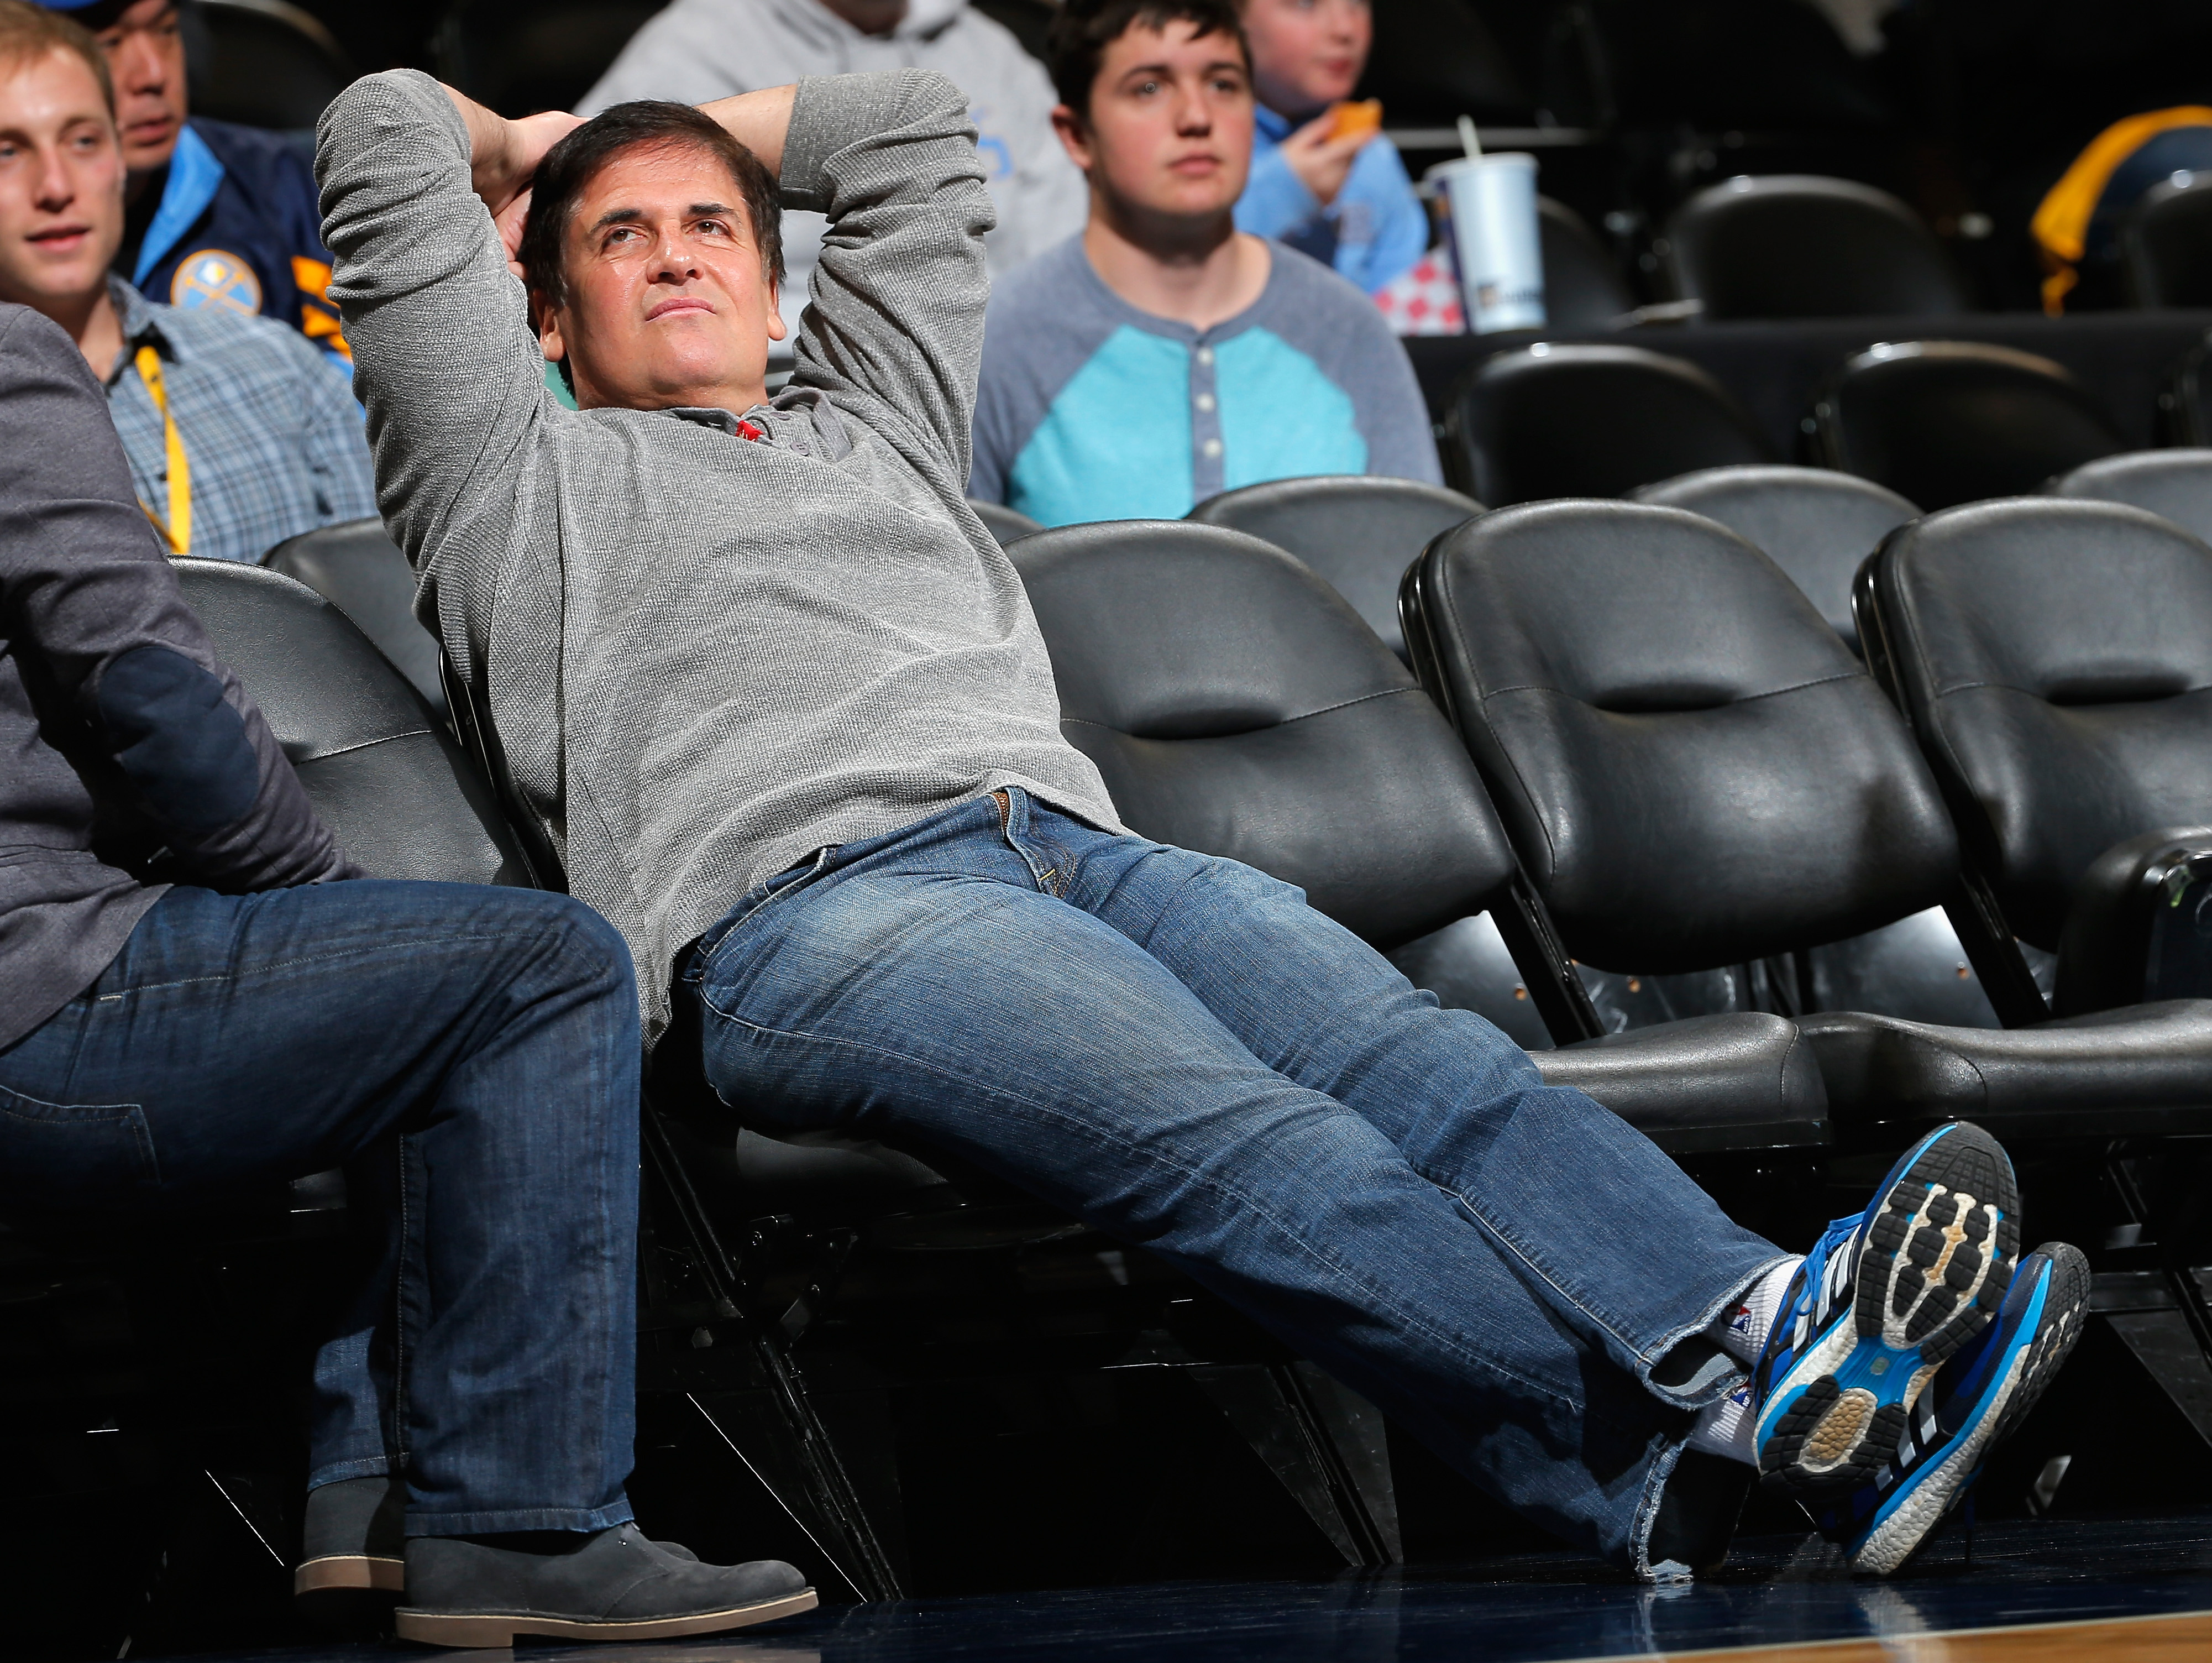 Mark Cuban said he wasn't even asked to play Trump in Hillary Clinton's debate prep.